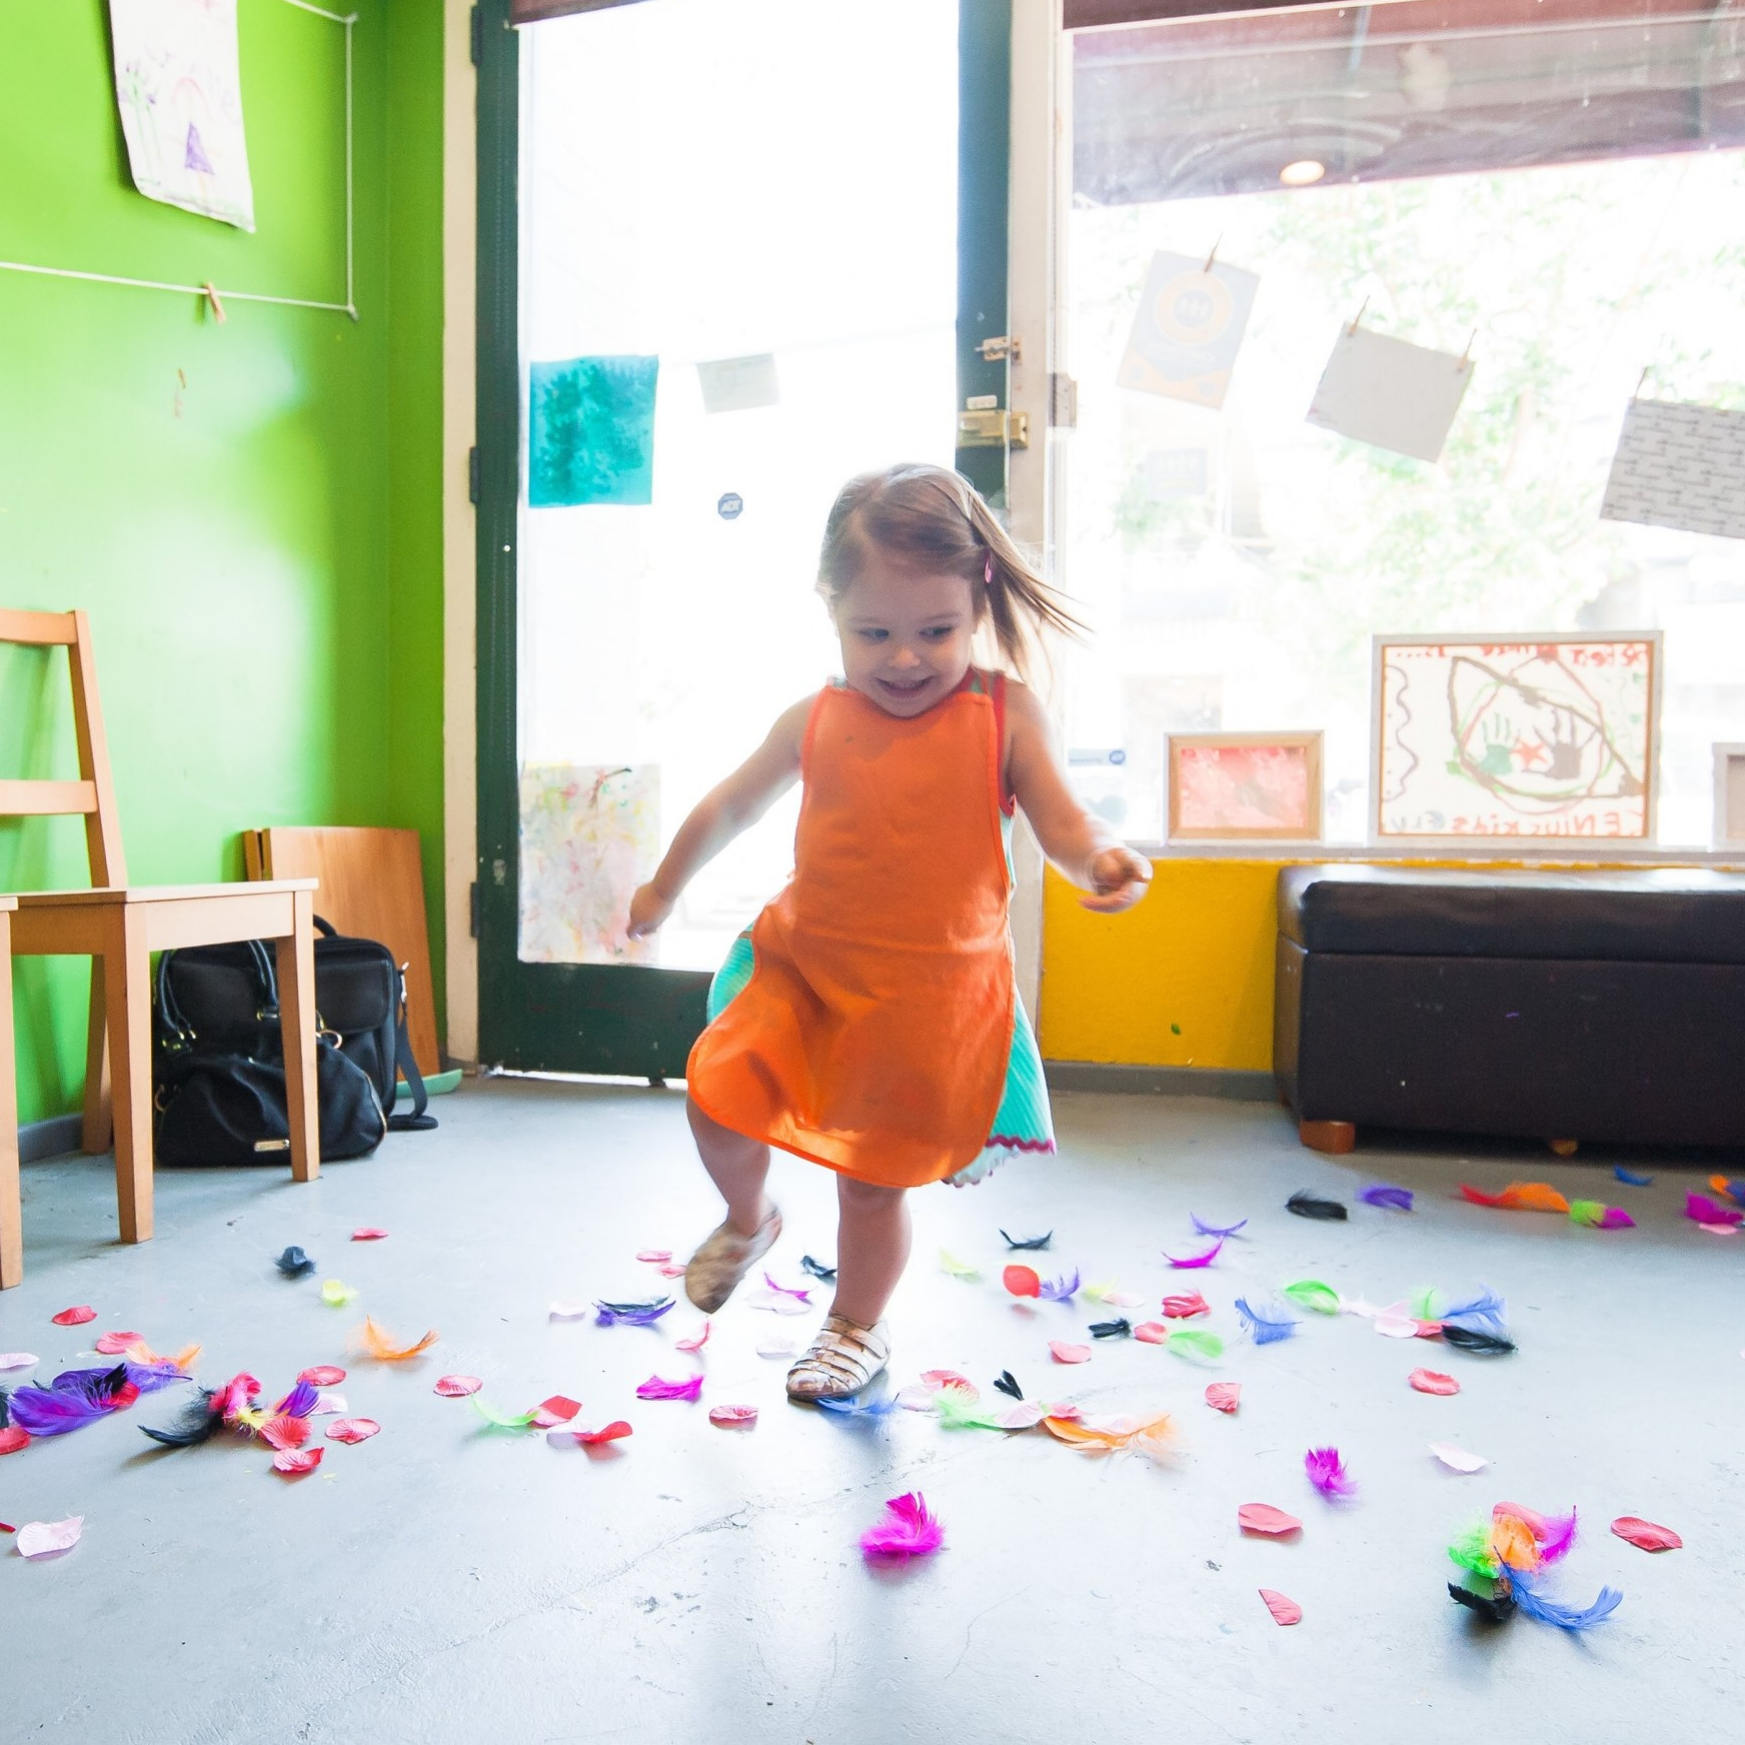 Central Gateway Preschool    Licensed childcare and preschool for children ages birth to 6 years.